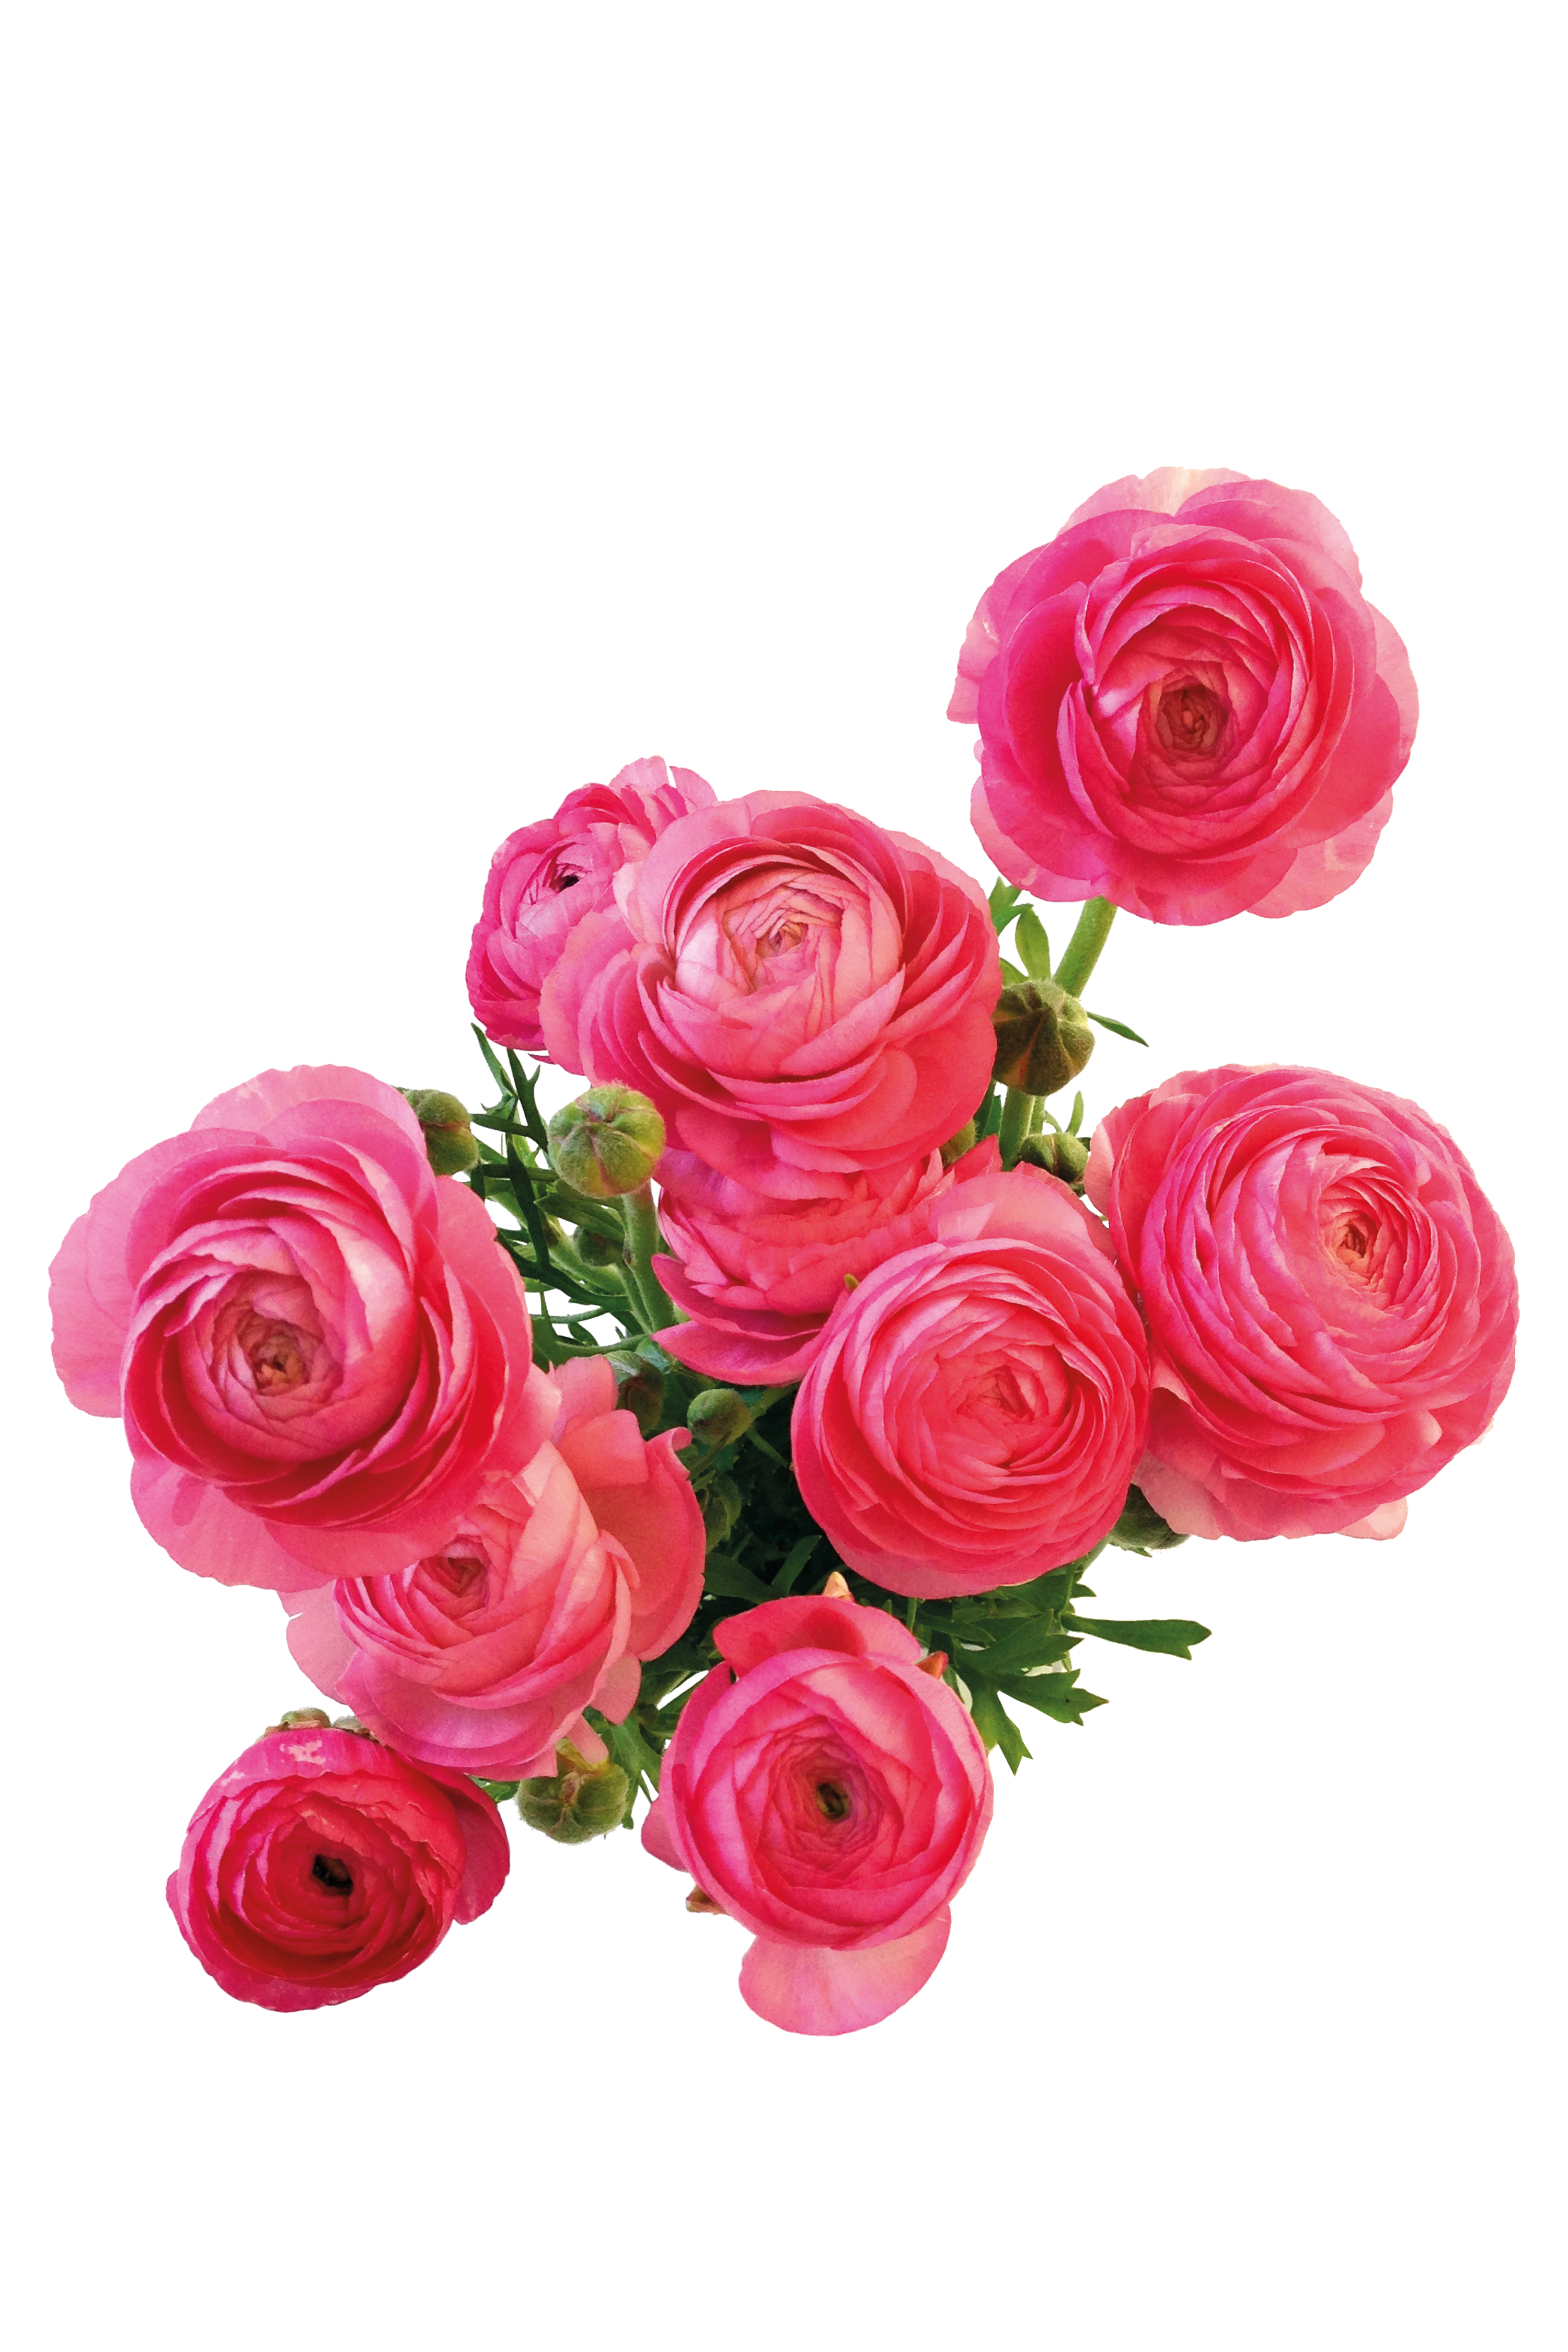 Flower photography android rose. Chinese flowers png clip library download